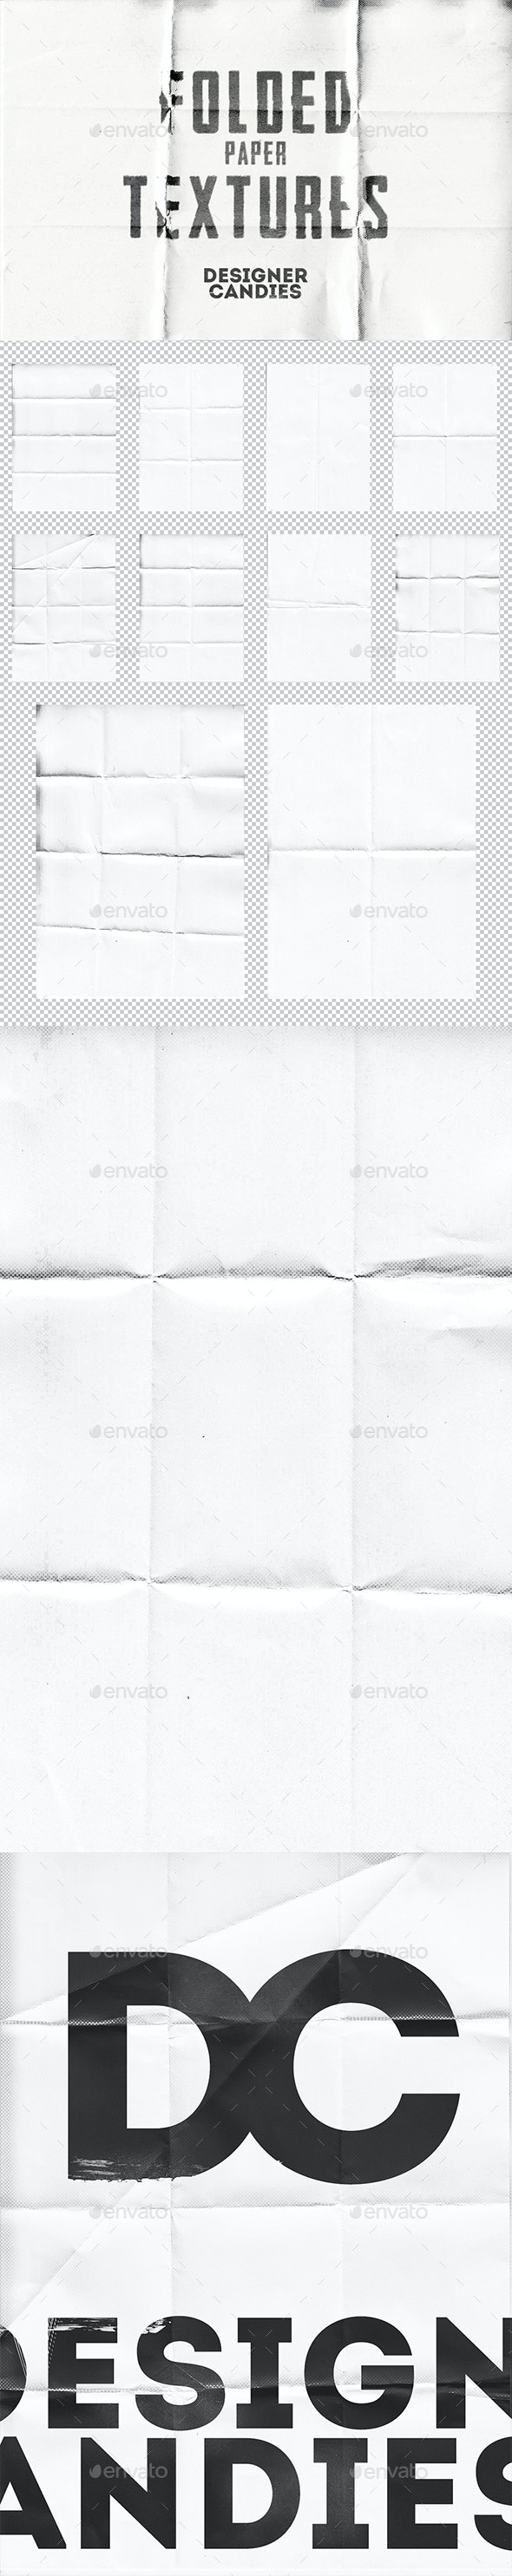 Folded Paper Textures - Paper Textures